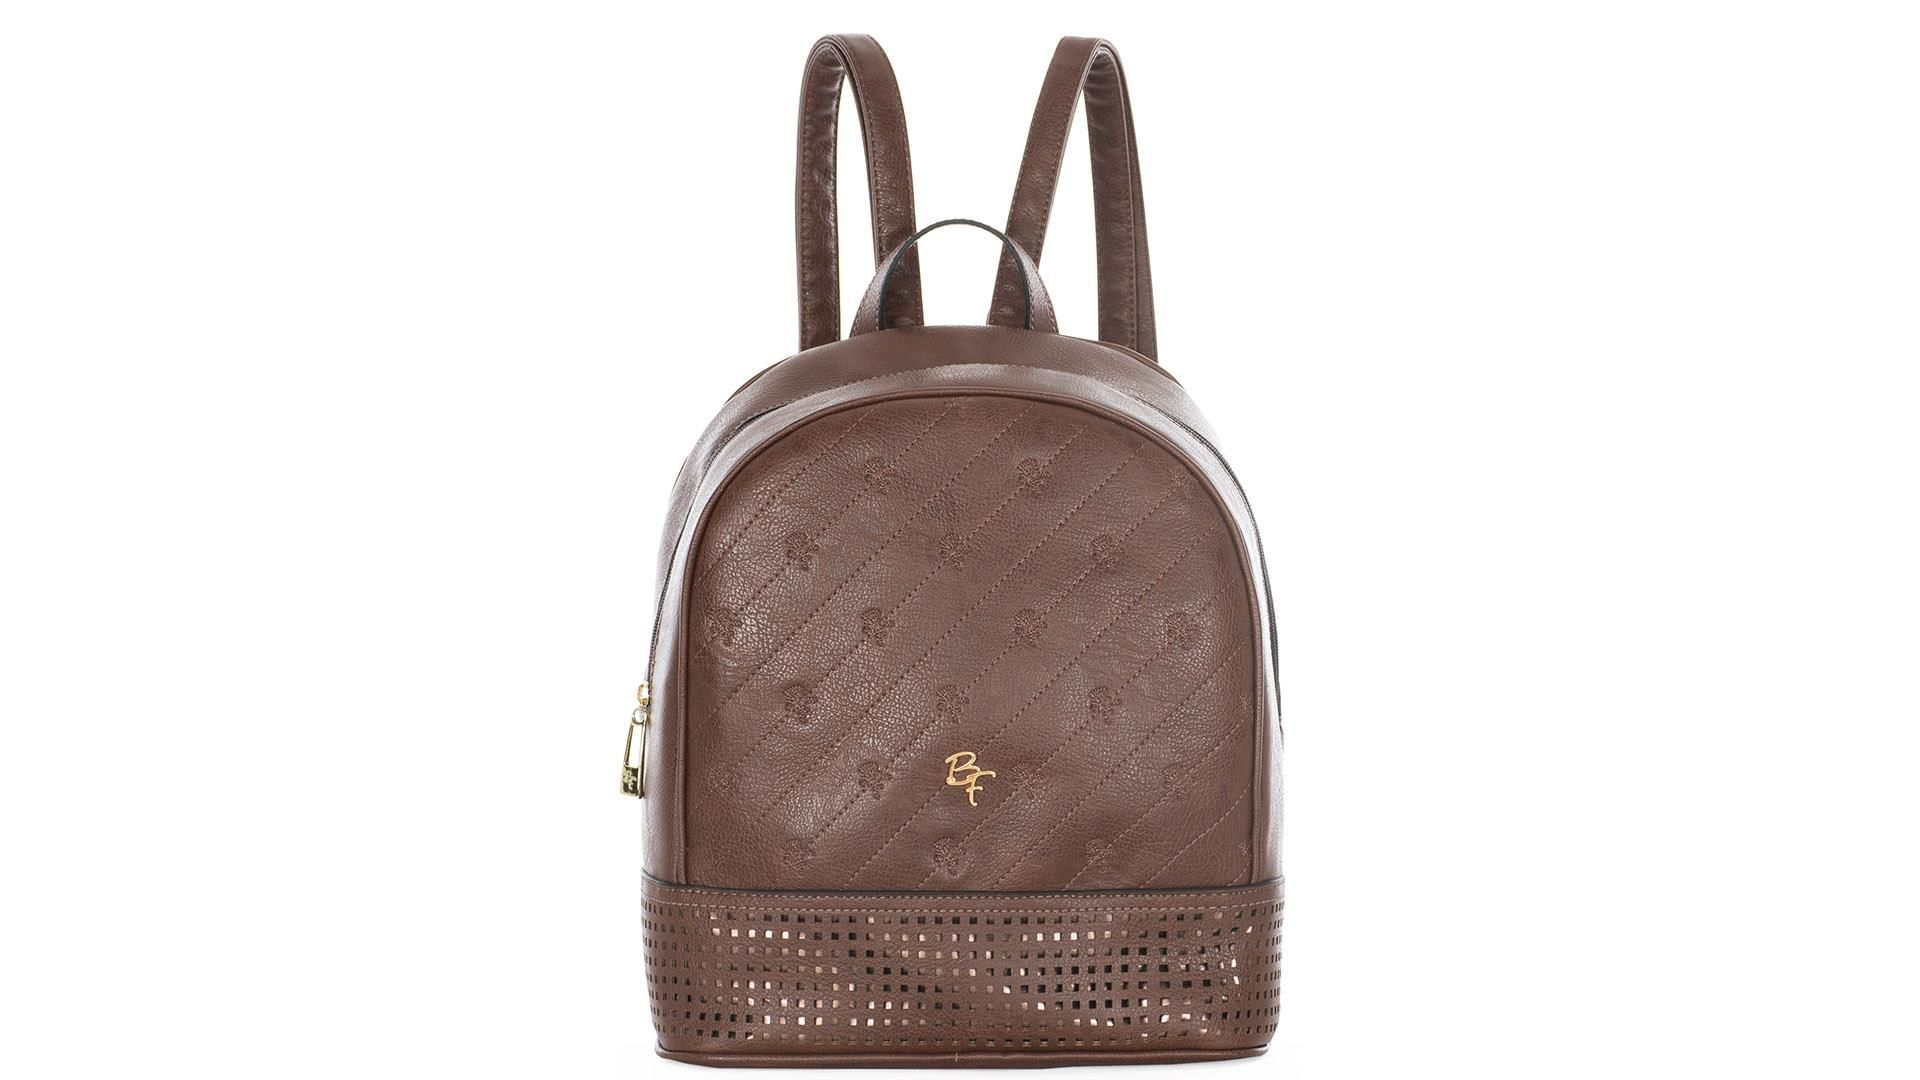 MOCHILA BE FOREVER 33.92124A3 MOCCA RAFITTHY